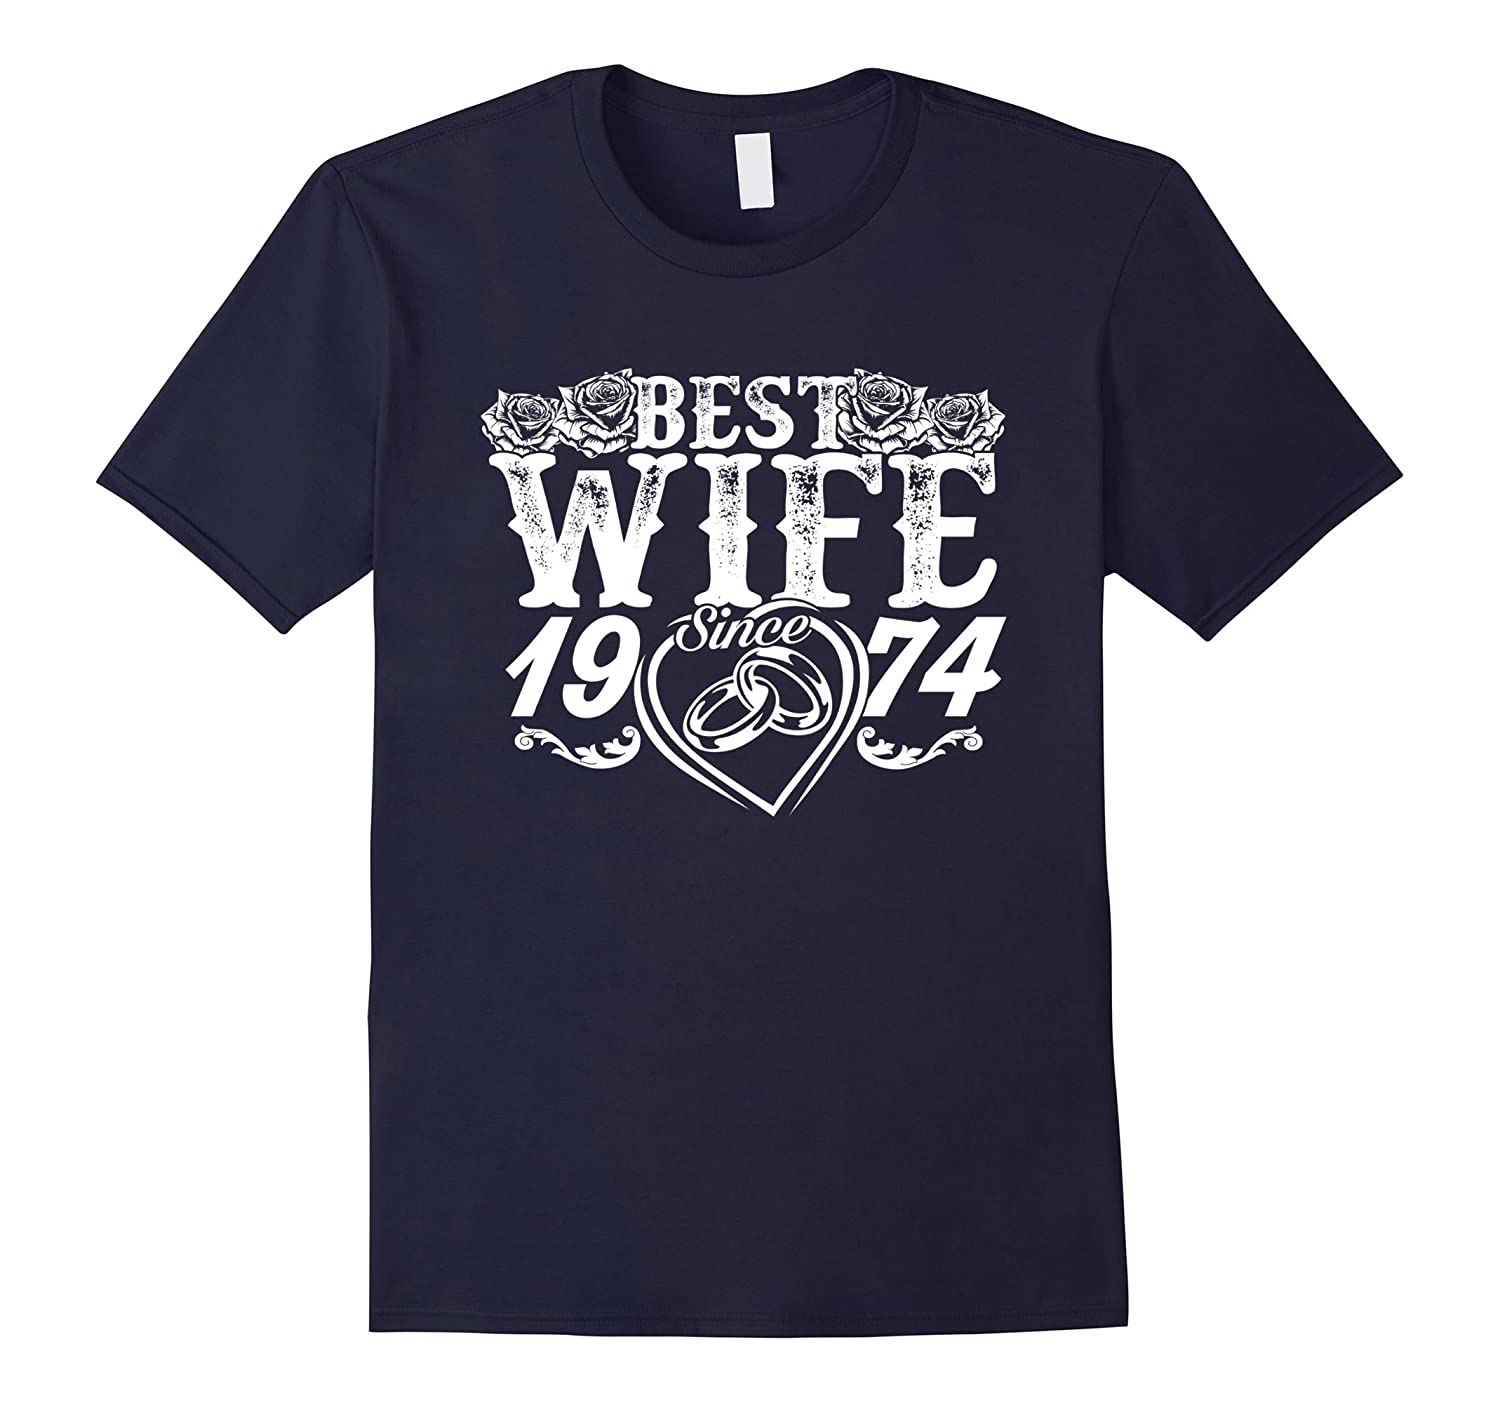 43rd Wedding Anniversary Gifts: Best Wife Since 1974 T-Shirt 43rd Wedding Anniversary Gift